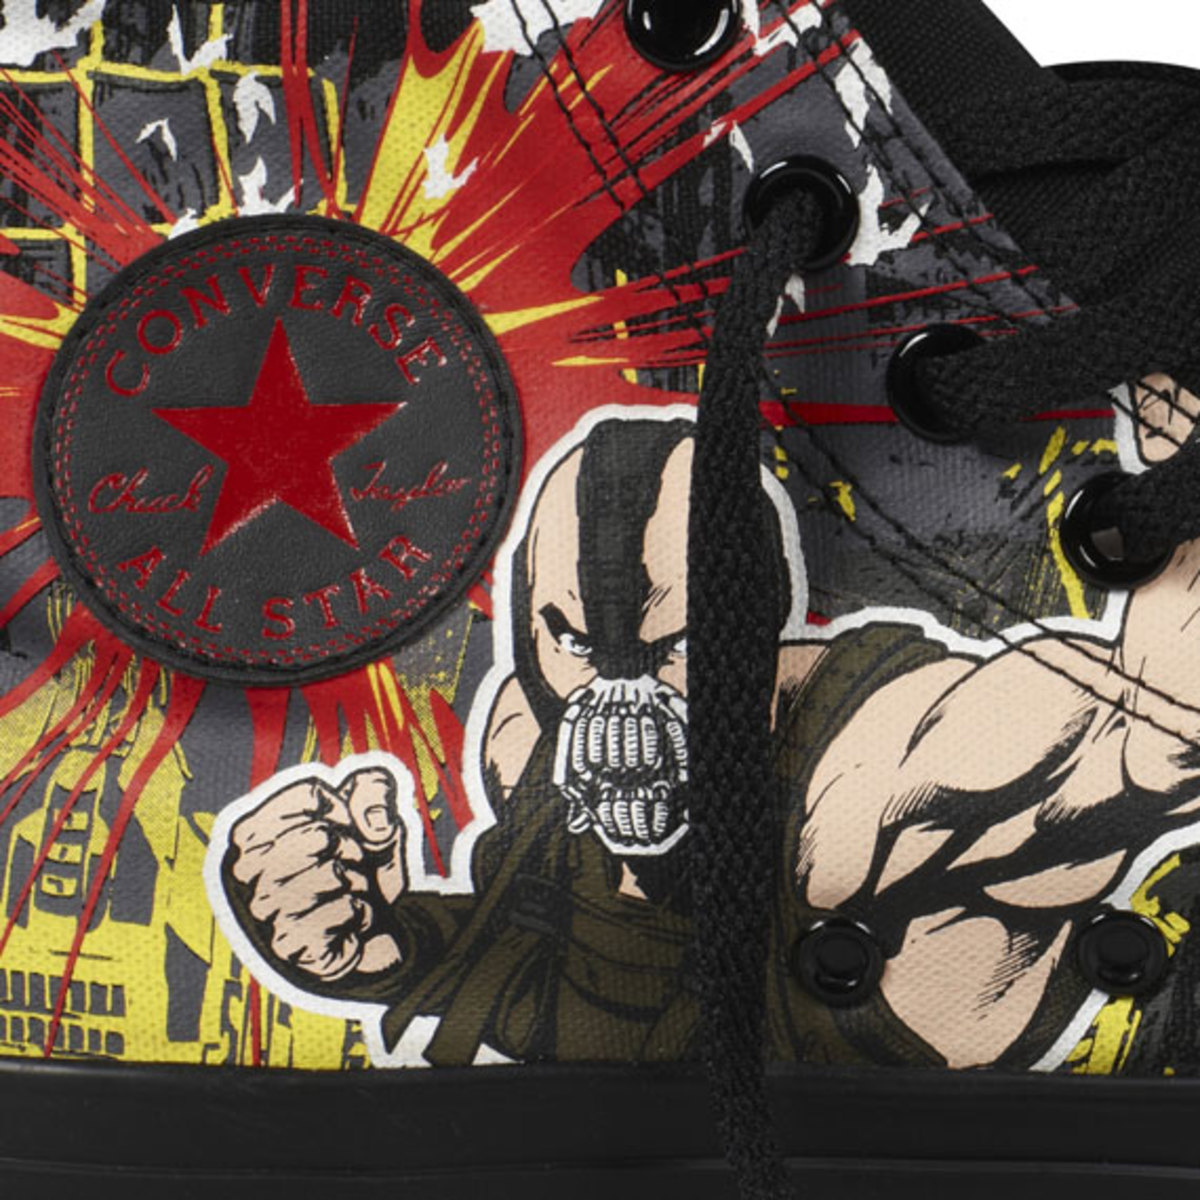 the-dark-knight-rises-converse-chuck-taylor-all-star-collection-04